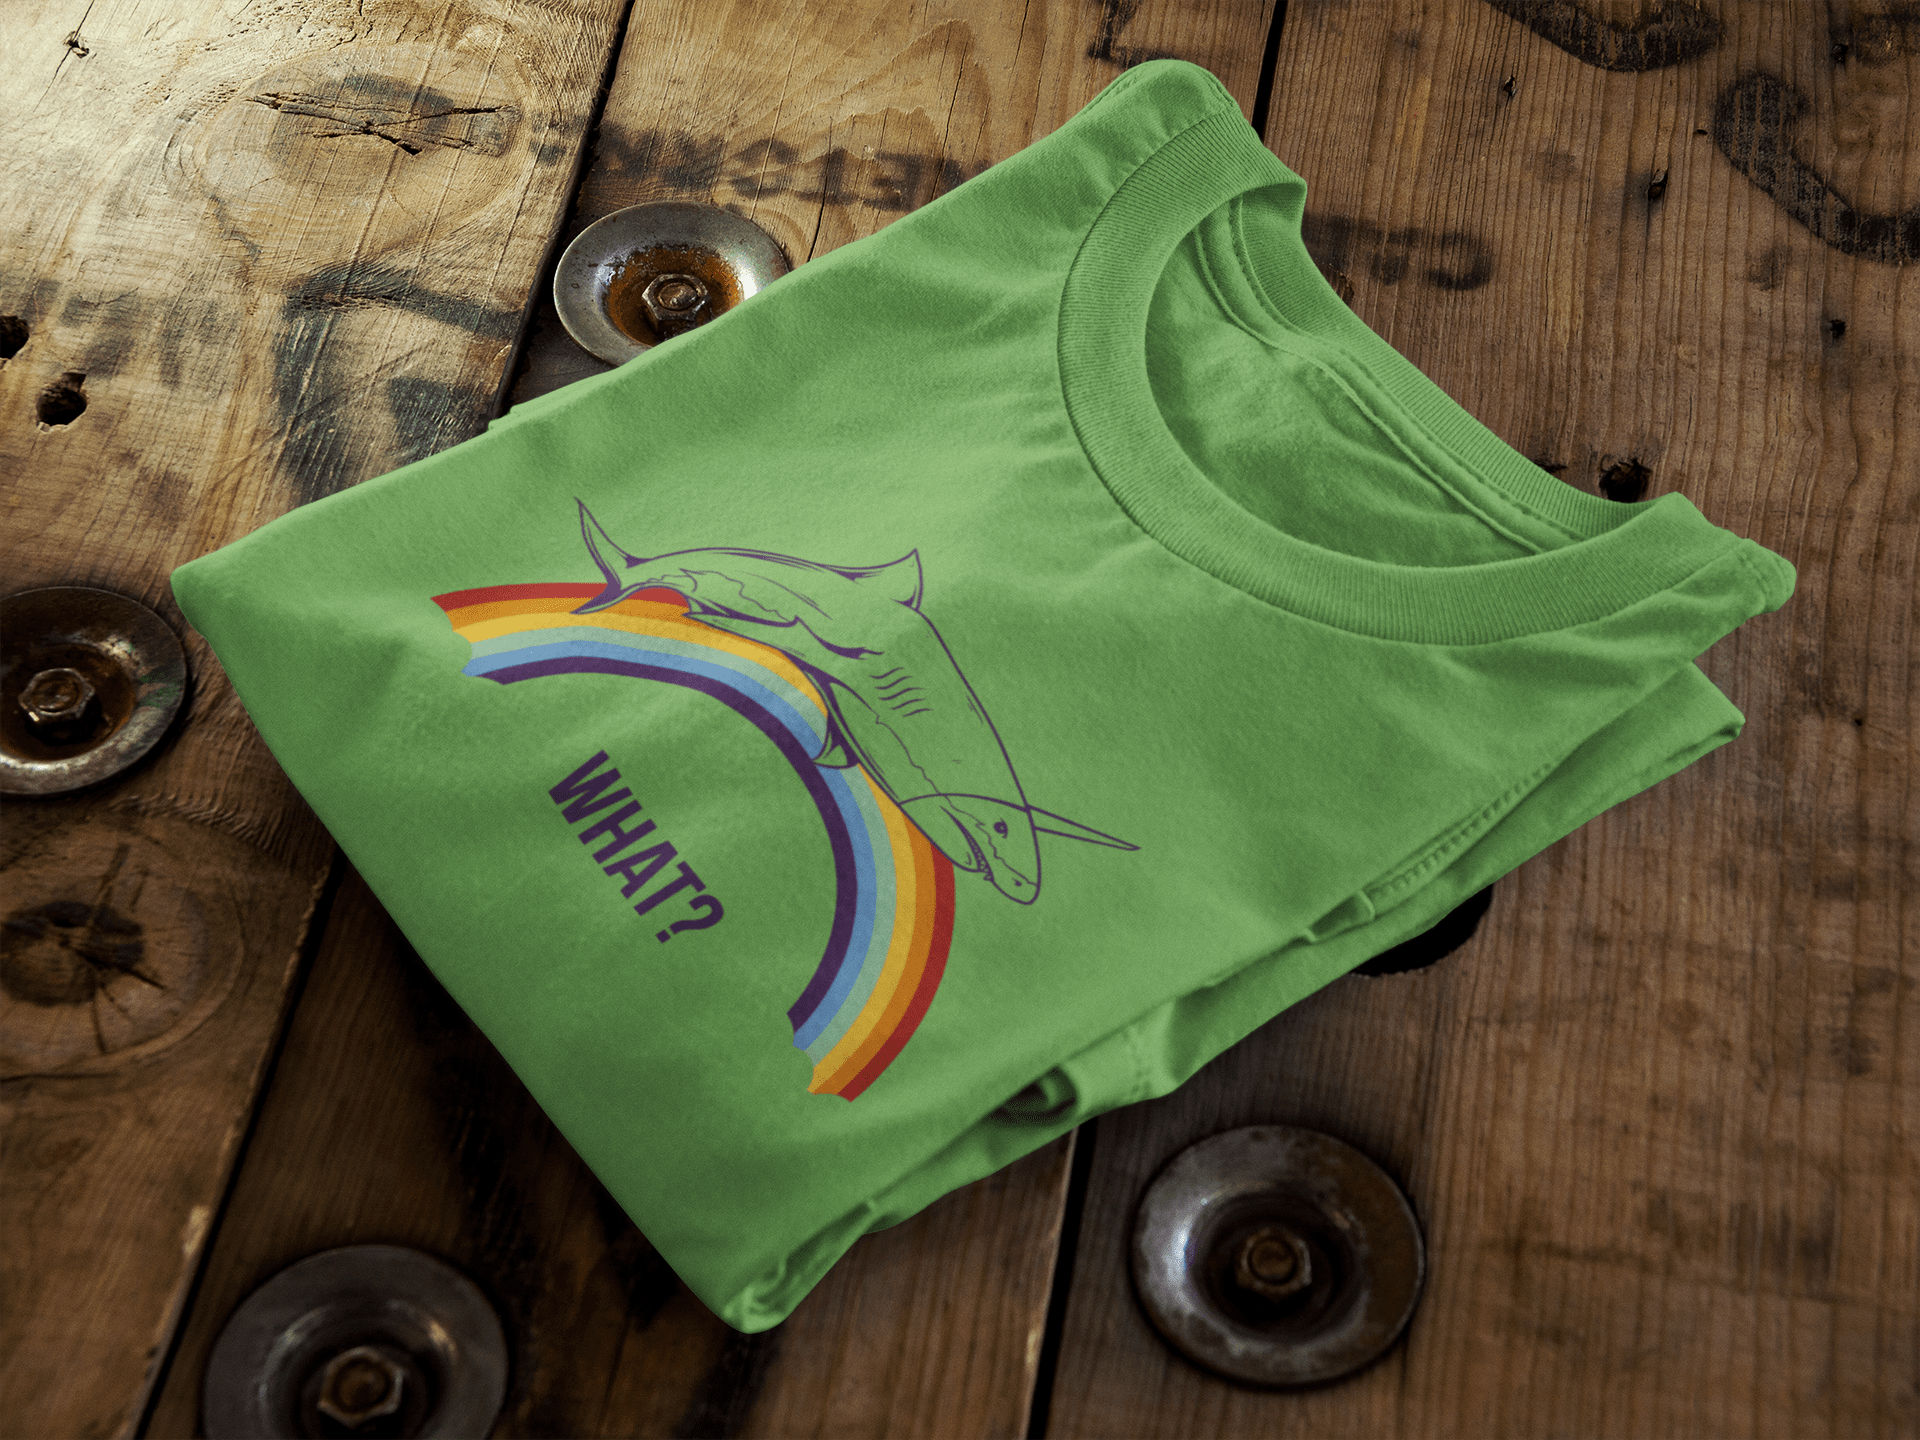 2018 Latest Trends in T-shirt Designs placeit 6